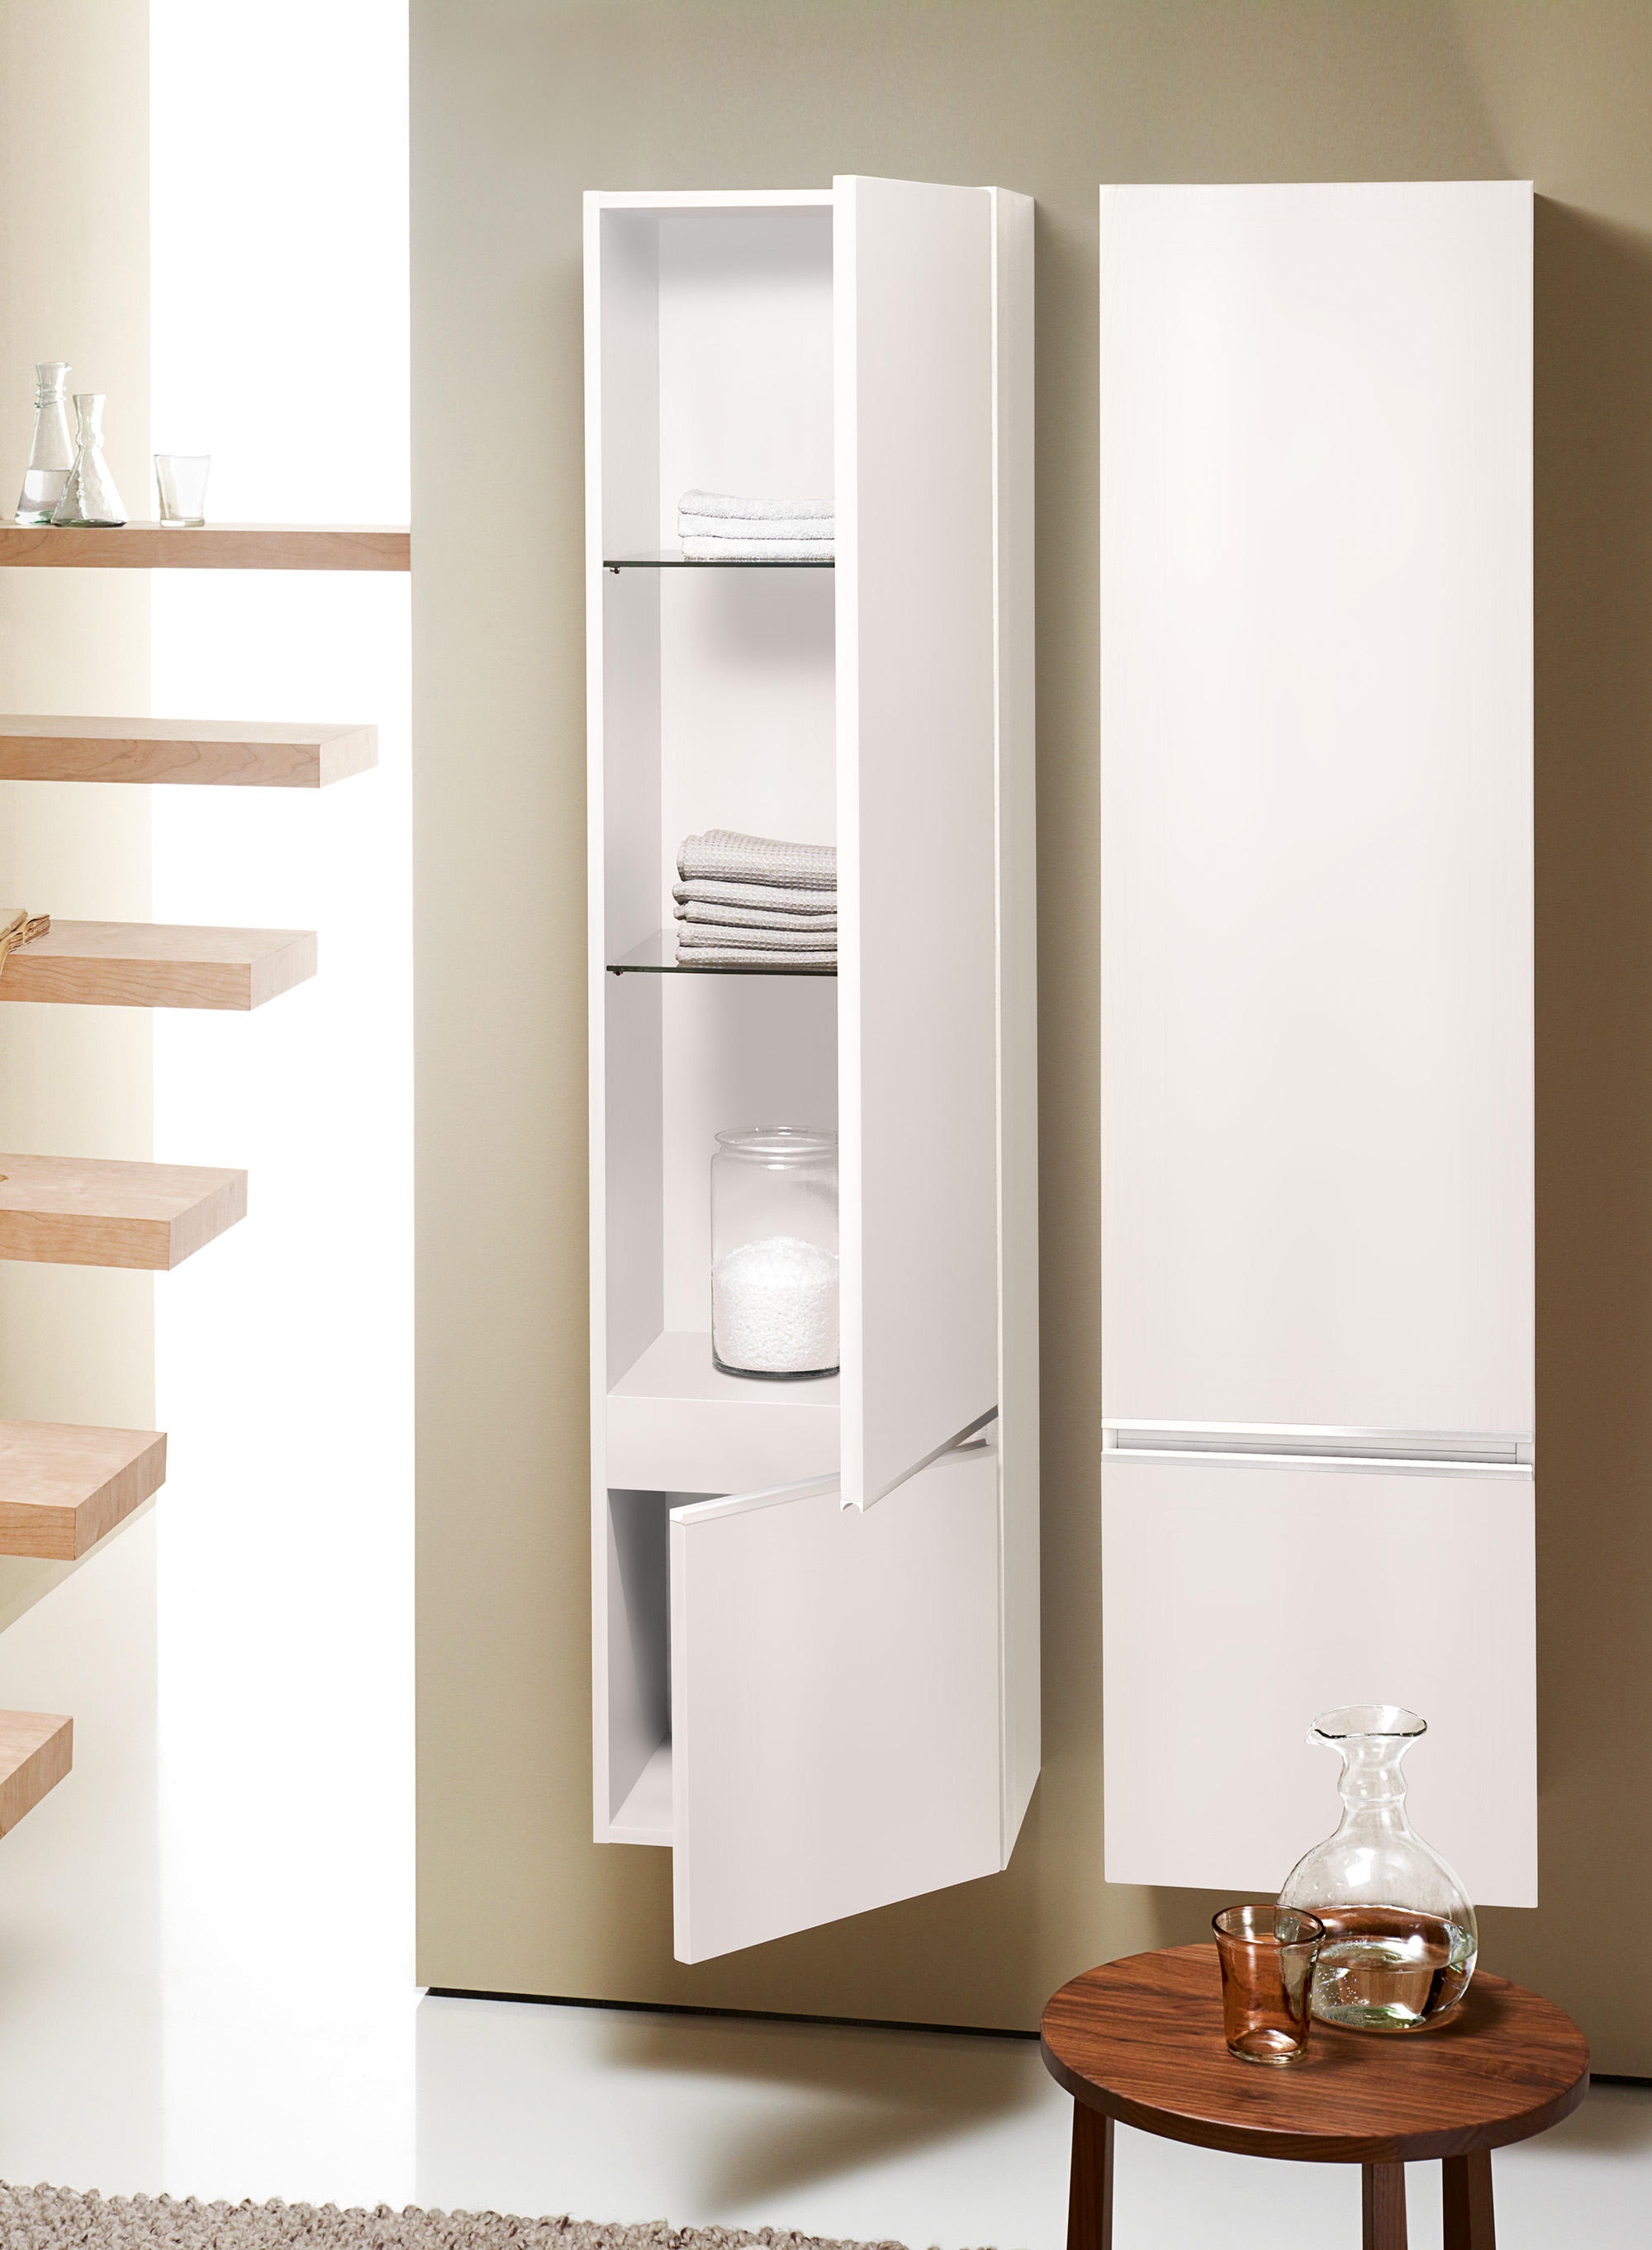 Bel tall unit wall cabinets from burgbad architonic for Catalogue salle de bain pdf